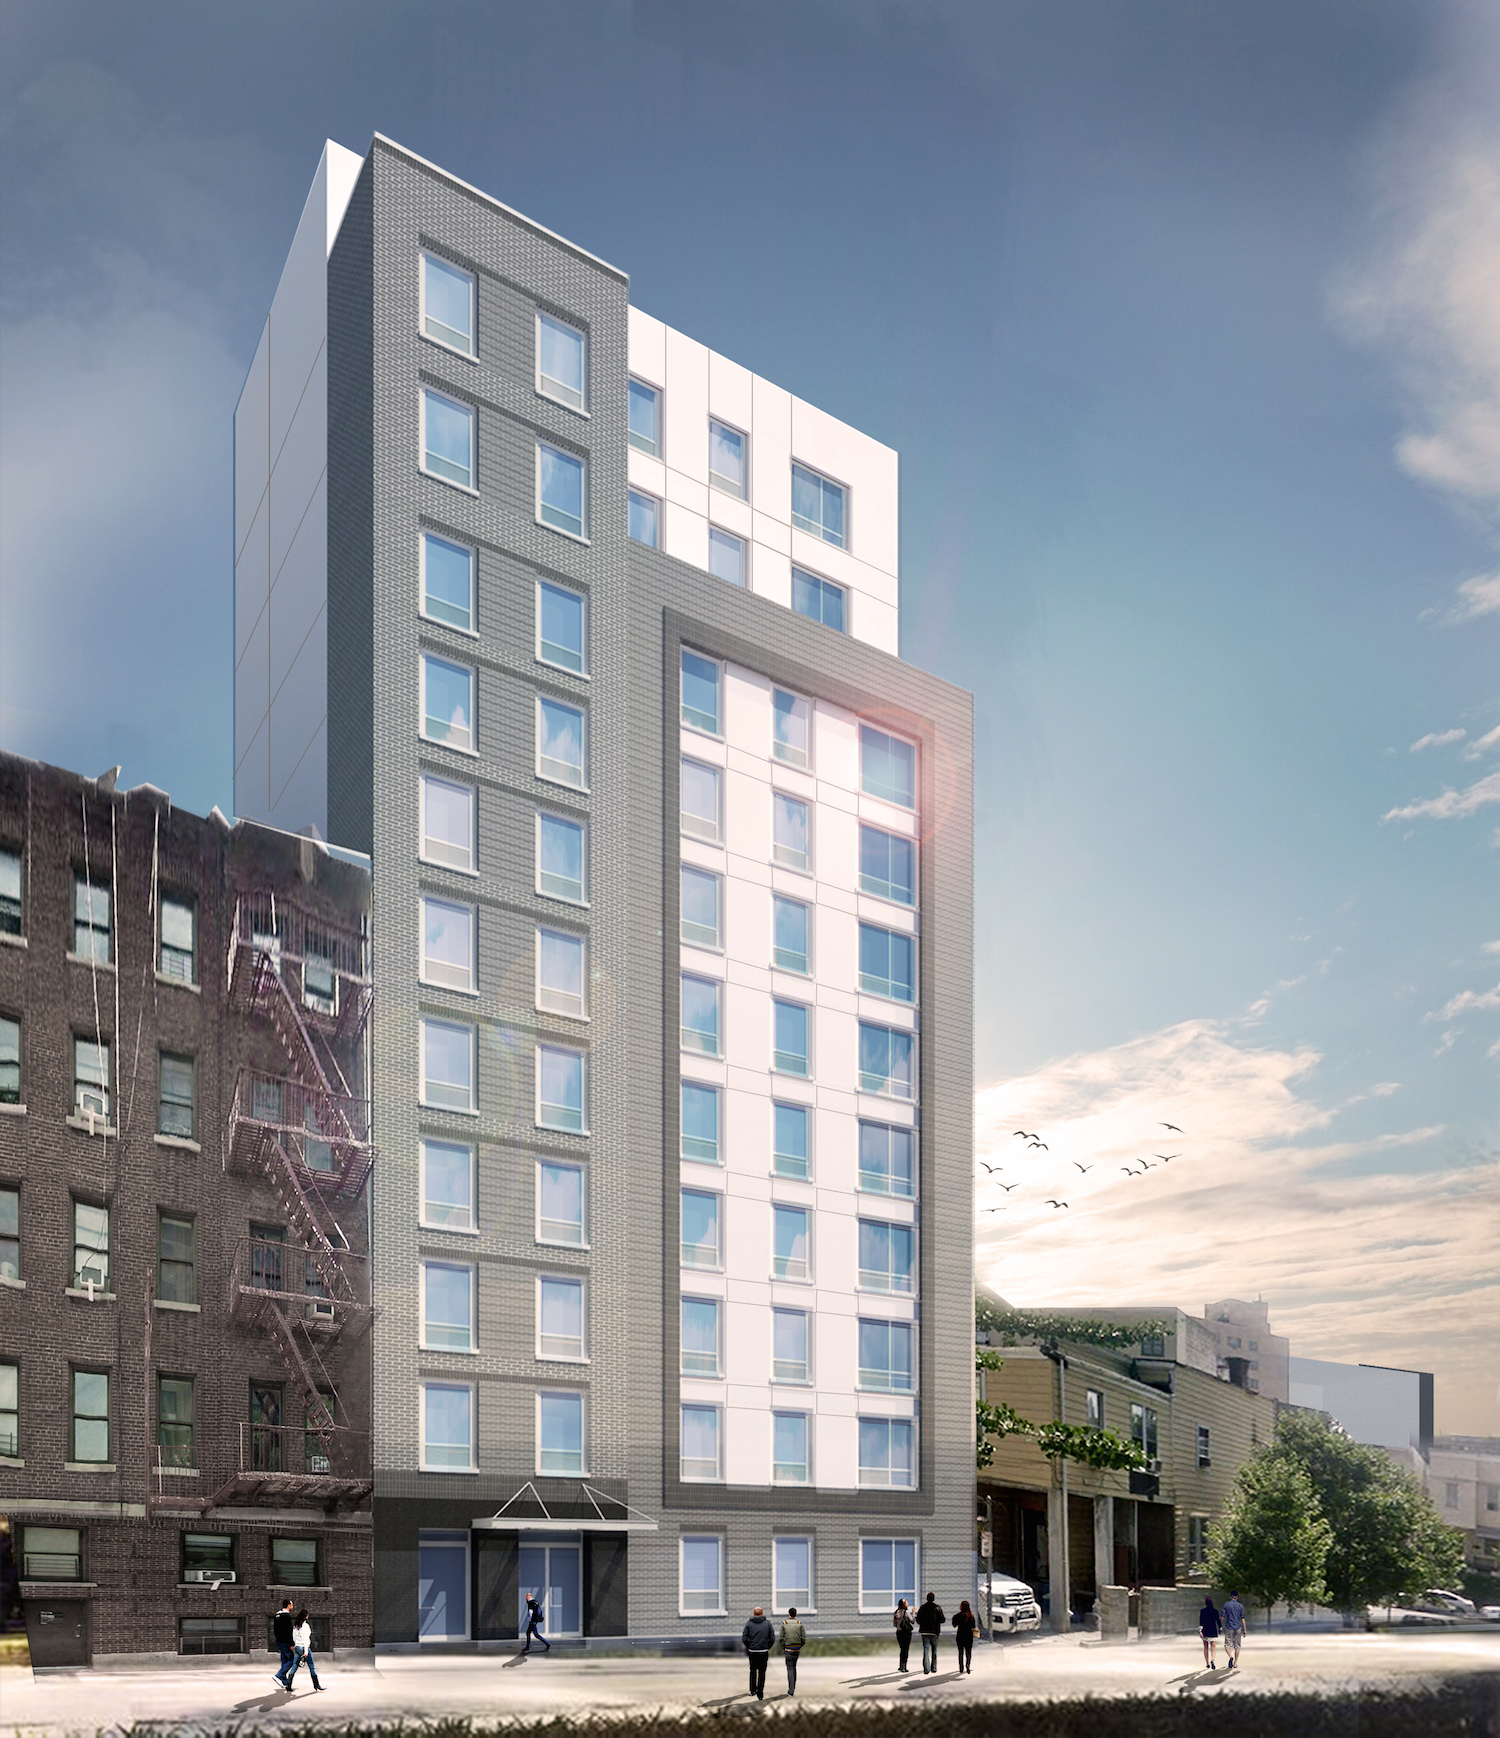 225 East 179th Street, rendering by GF55